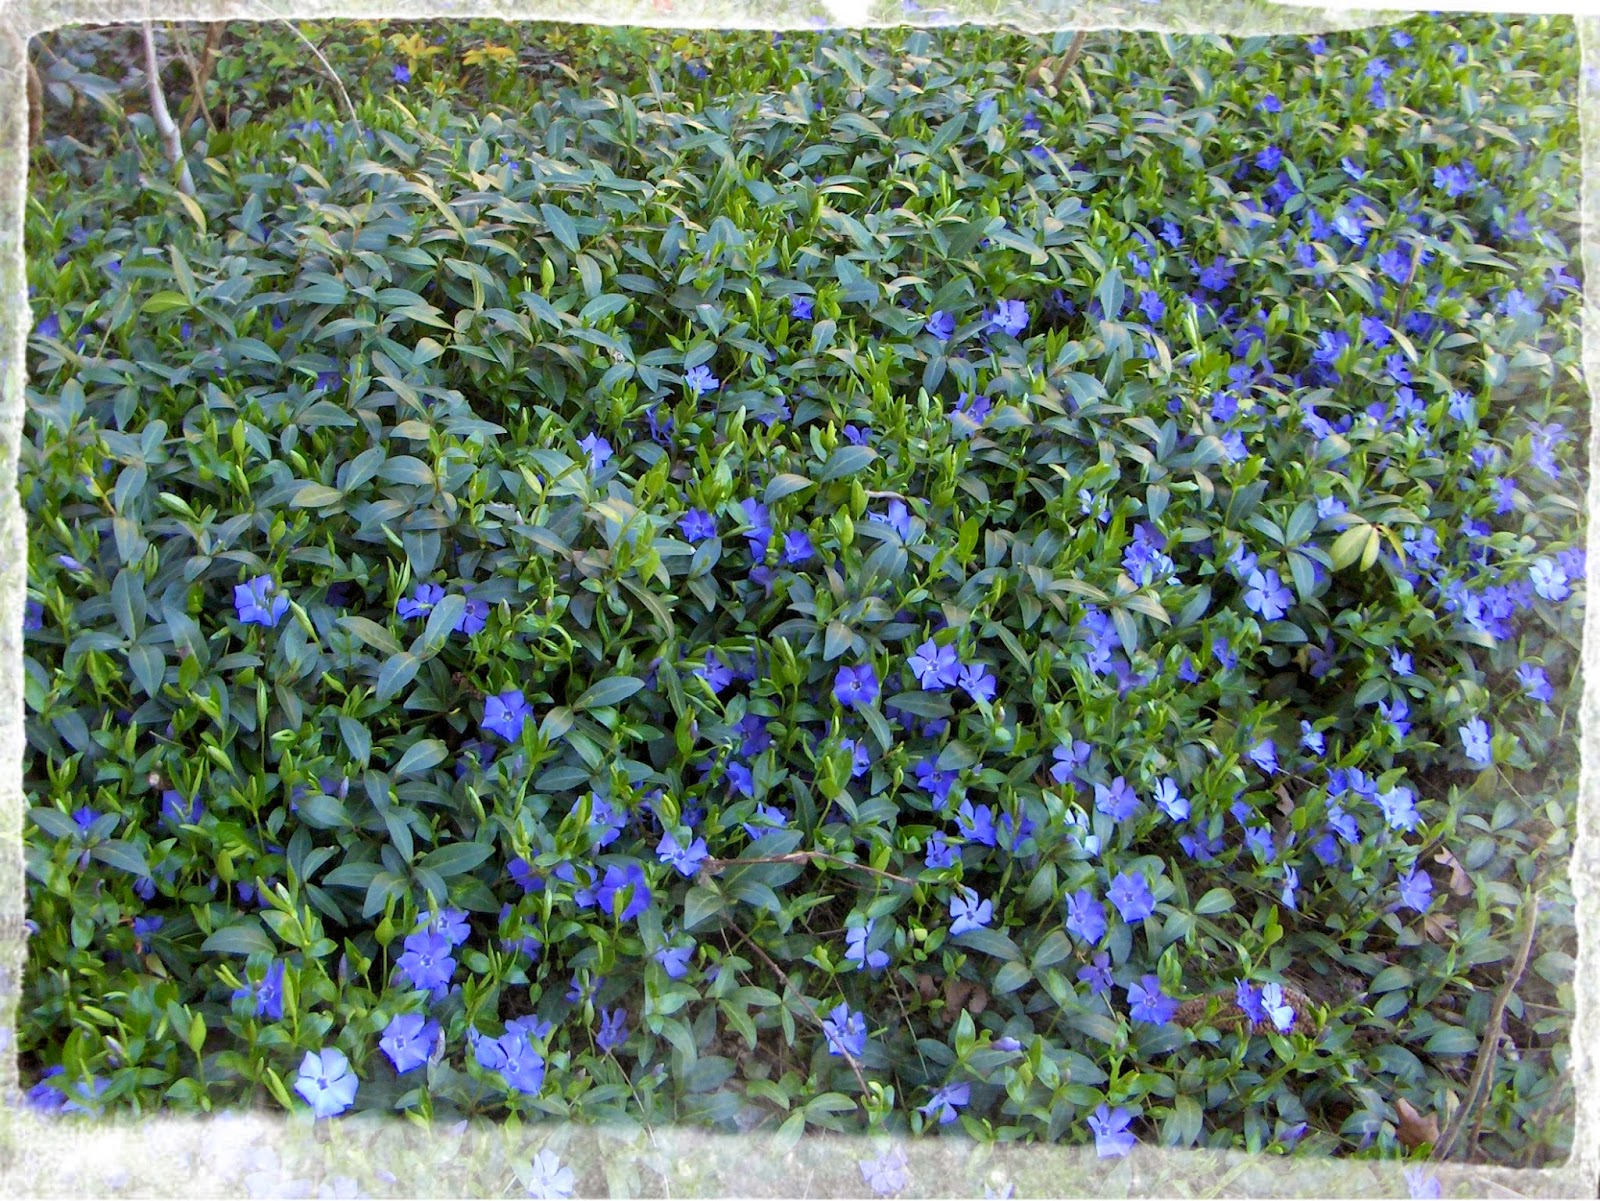 Blue flowered ground cover o2 pilates busy bee march 2017 mightylinksfo